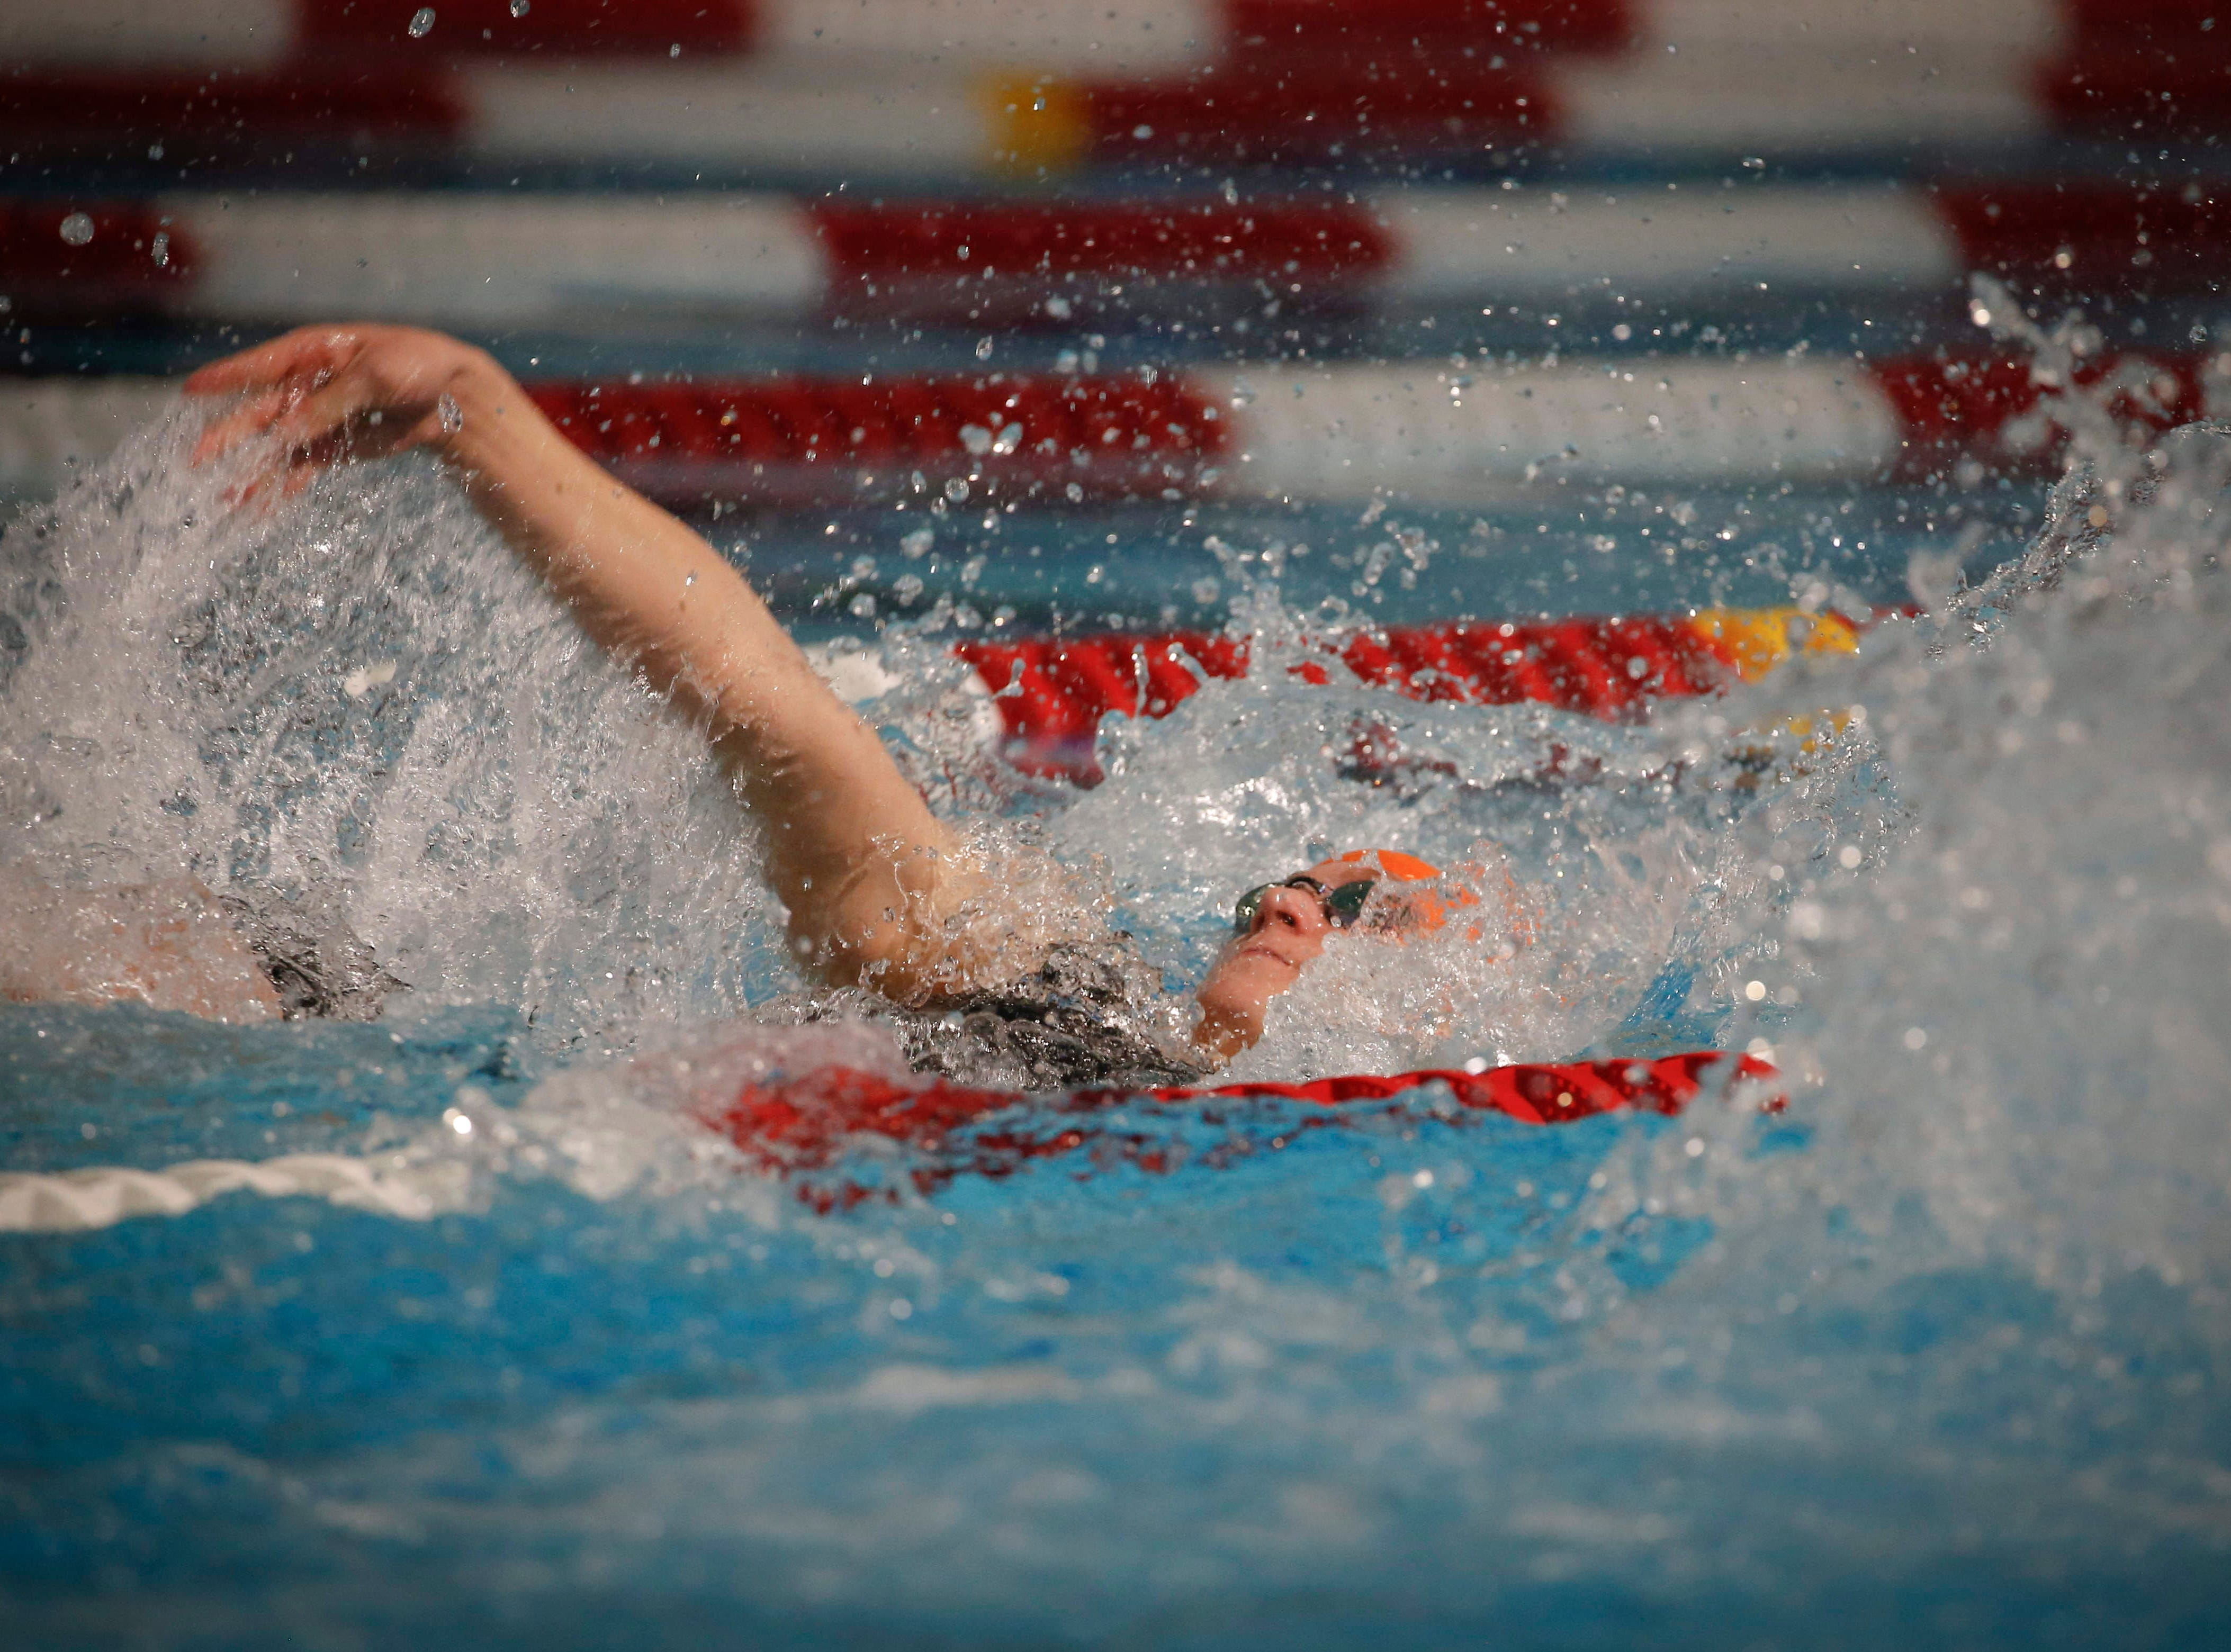 Amy Feddersen of Ames competes in the 50-meter backstroke during the 2019 TYR Pro Swim Series on Thursday, March 7, 2019, at the downtown YMCA pool in Des Moines.